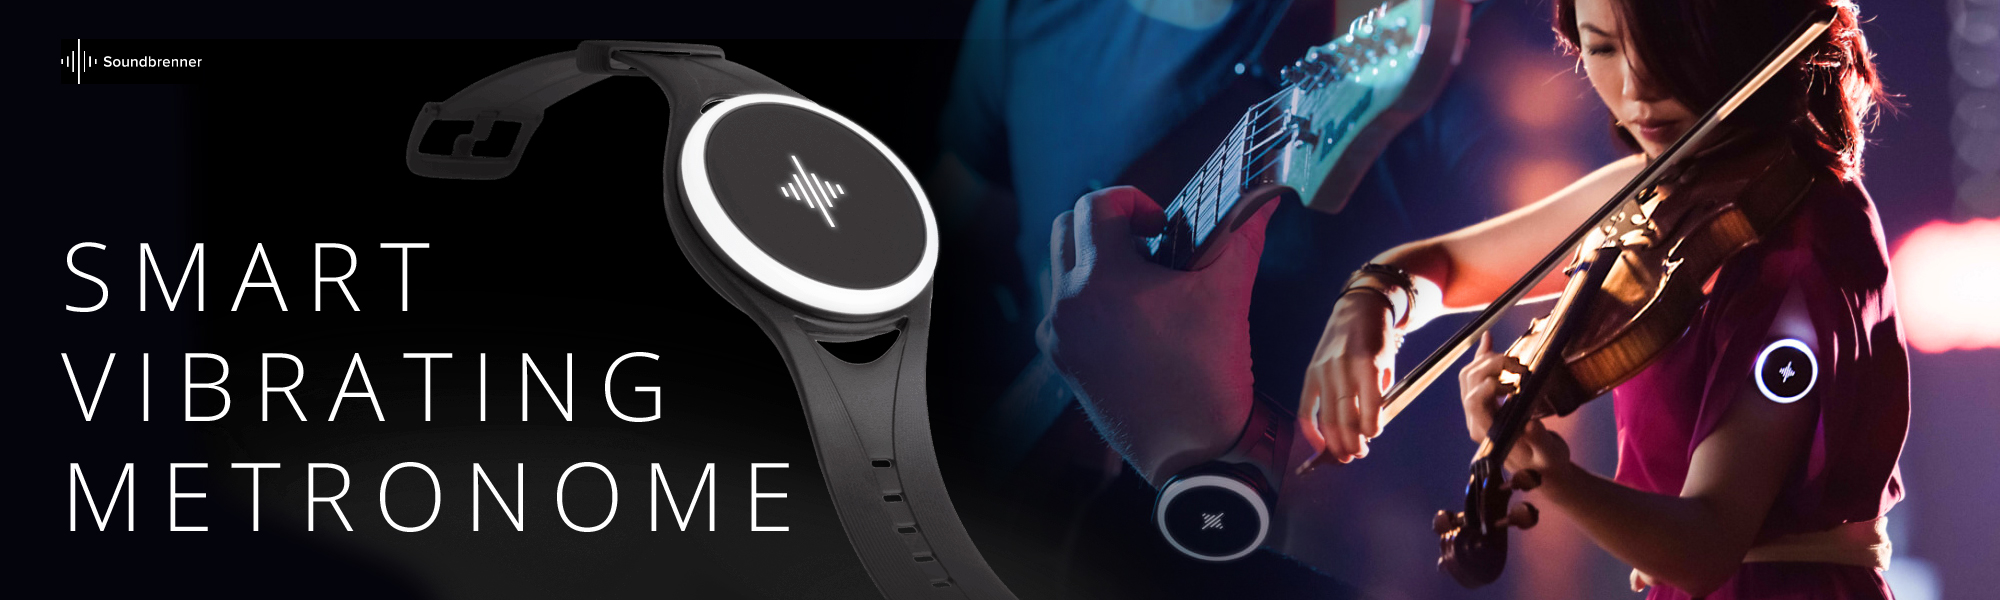 SOUNDBRENNER Pulse Smart Vibrating Metronome